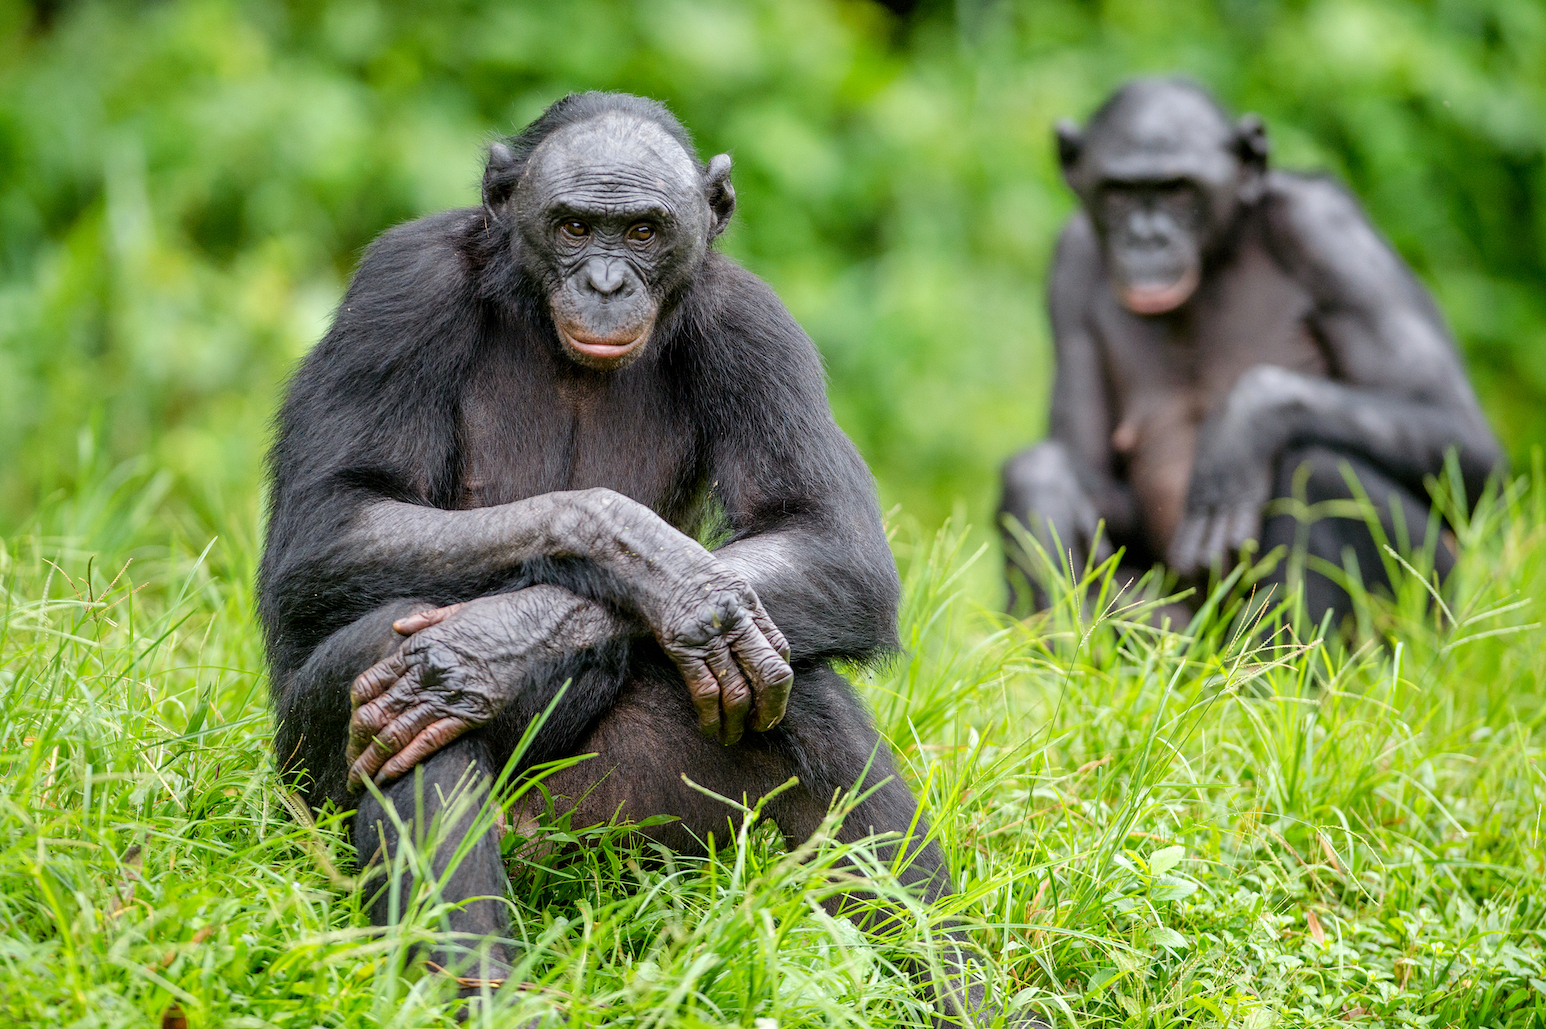 The rare great ape bonobos may be more closely linked, anatomically, to human ancestors than common chimpanzees, a new study found.